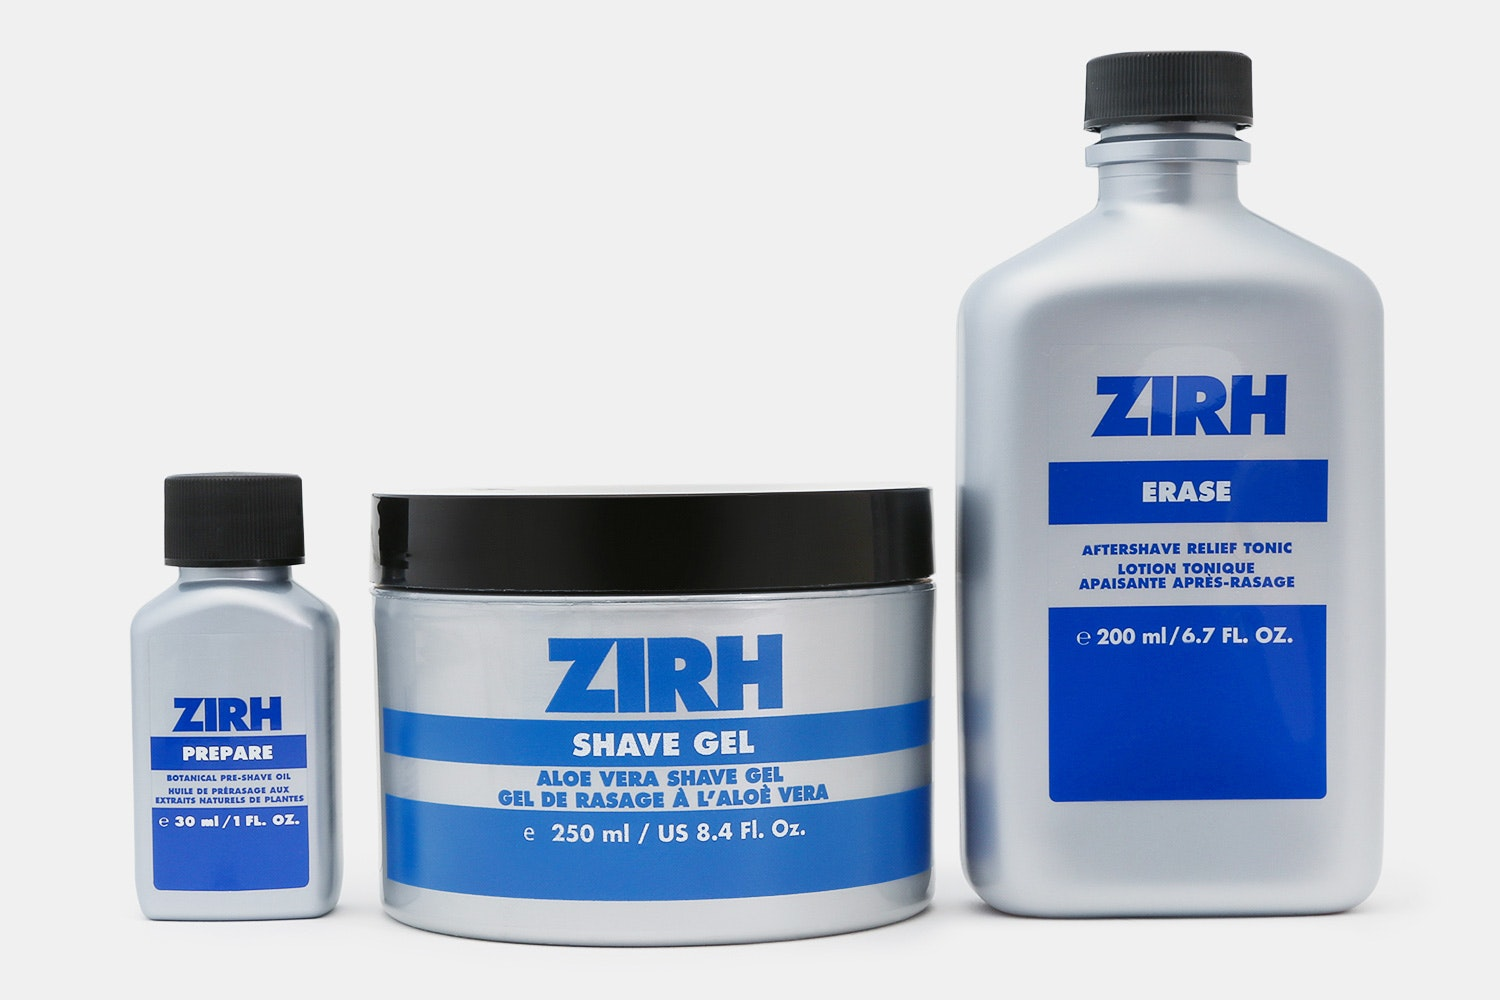 Pre-shave Oil, Shave Gel, Aftershave Relief Tonic